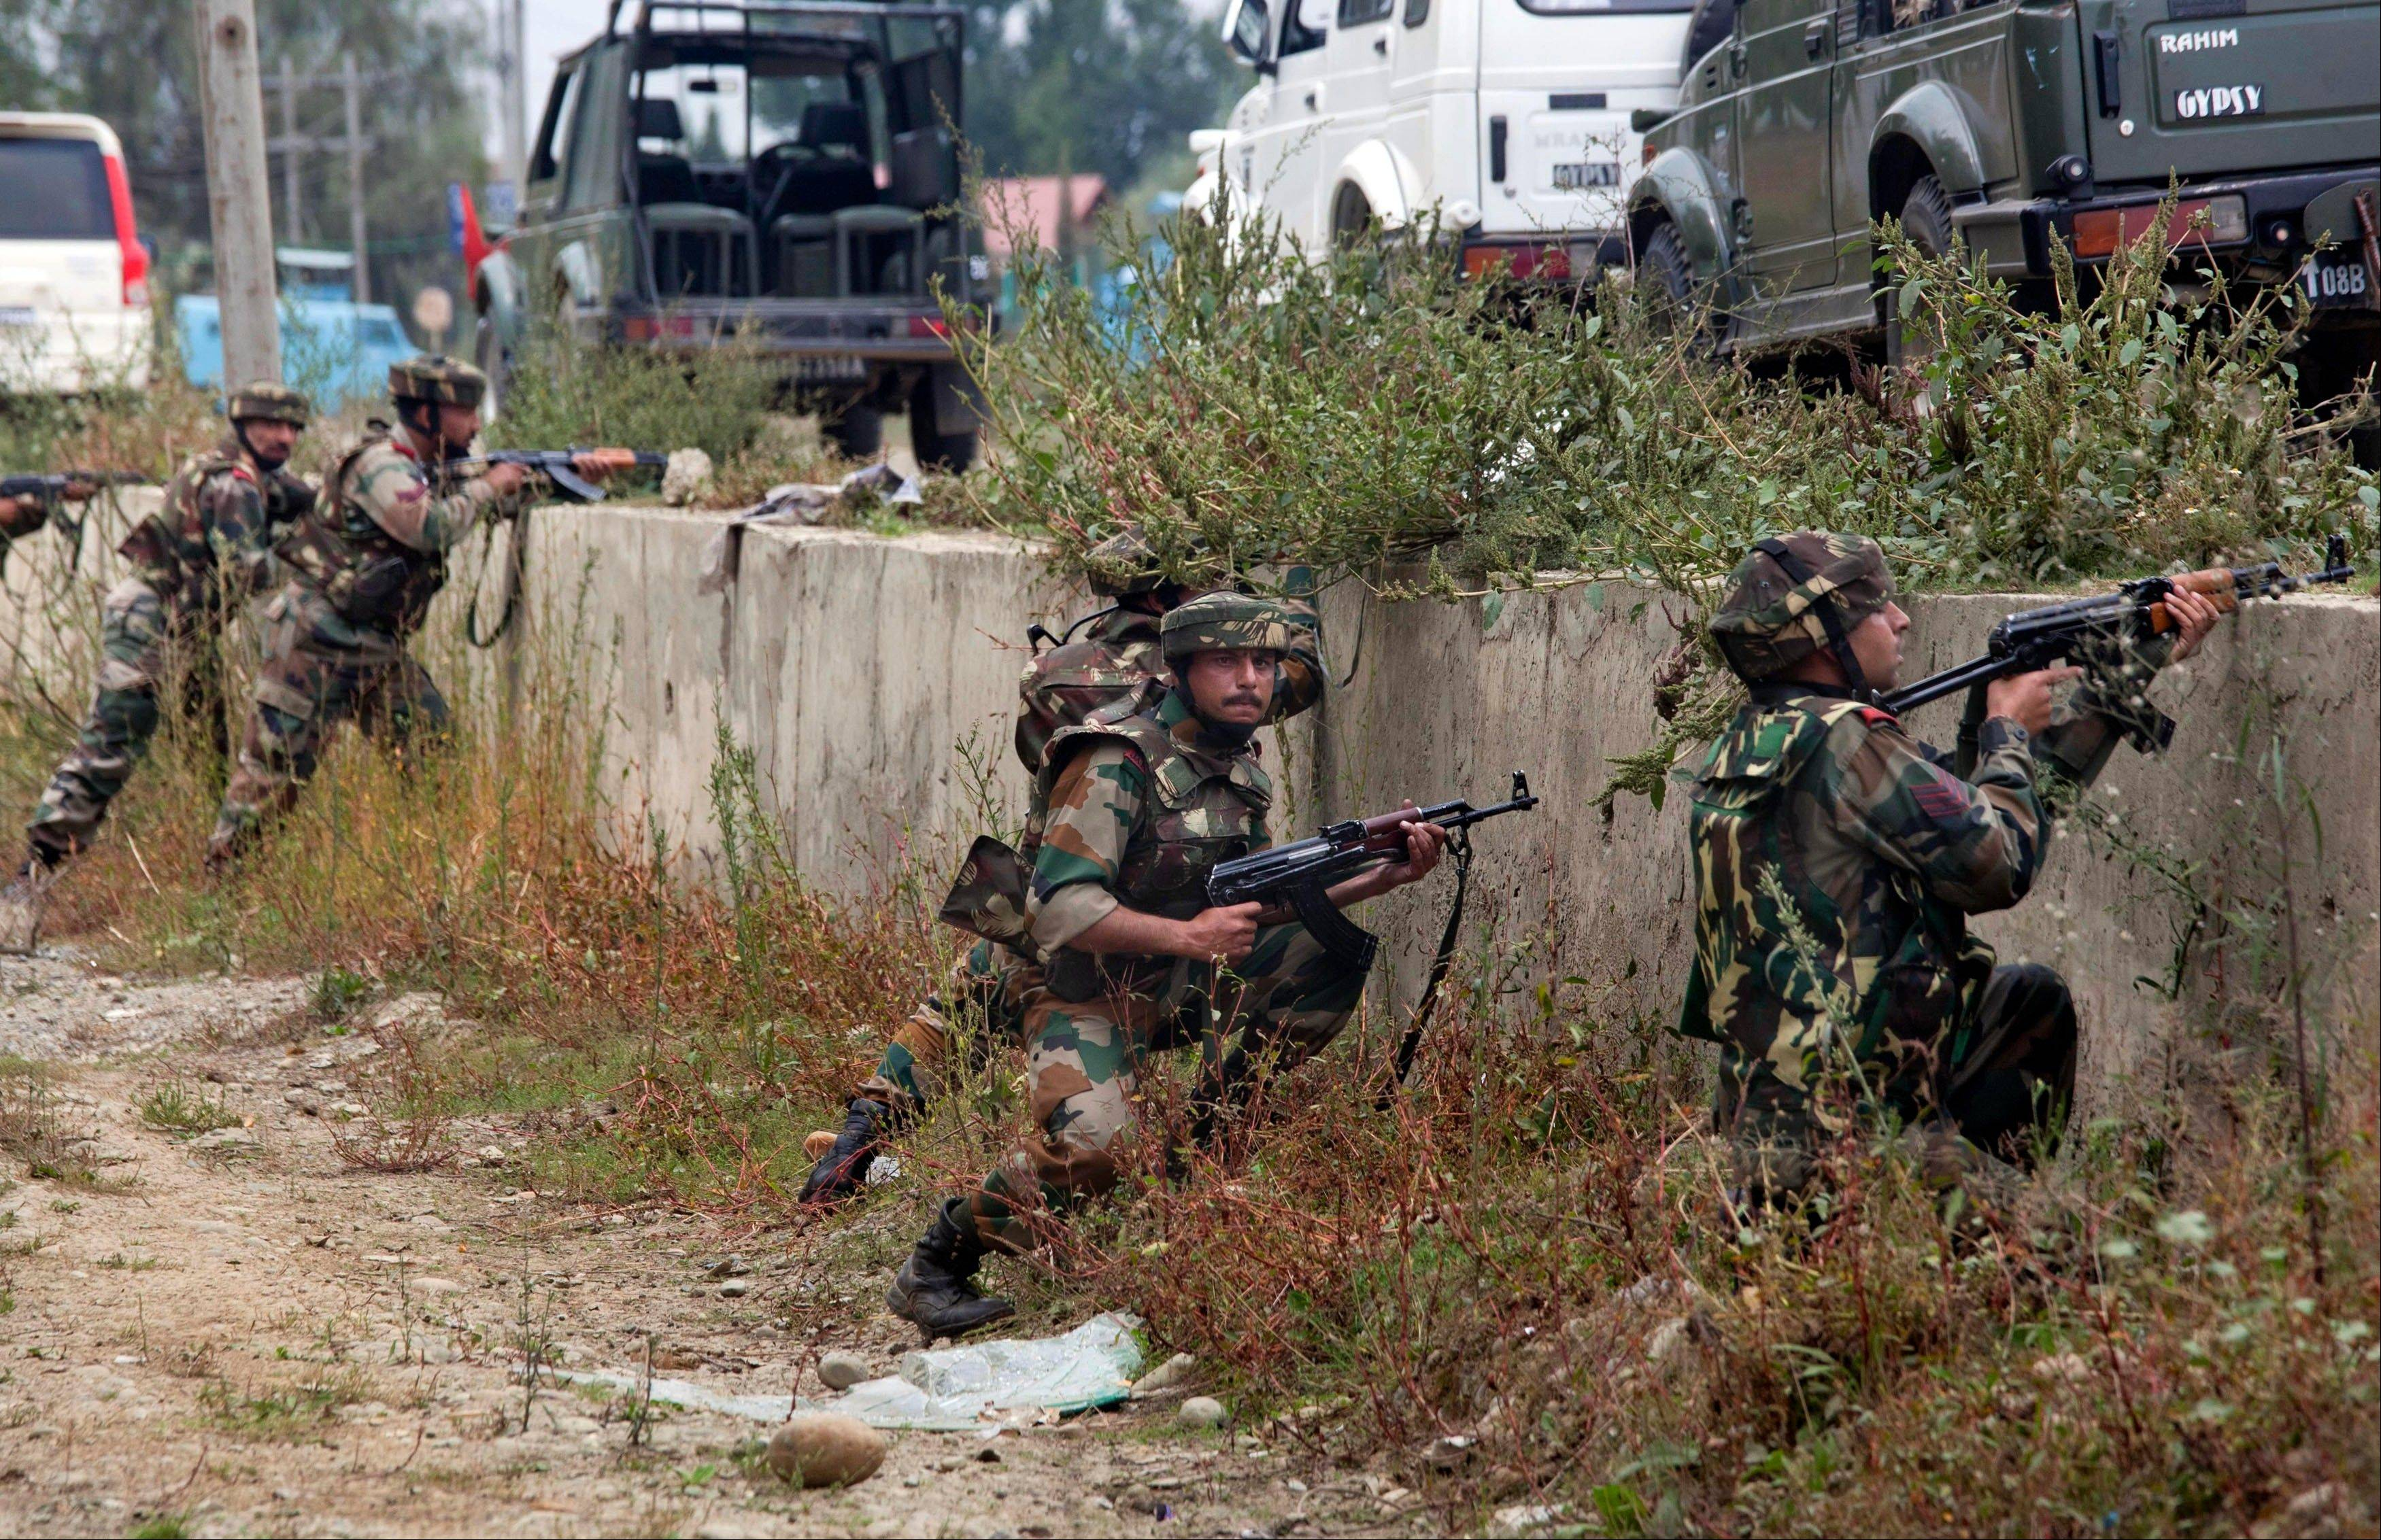 Indian army soldiers take position during a shooting near a military convoy on the outskirts of Srinagar, India, Saturday, Sept. 28. It was not immediately clear if the shots fired Saturday in Srinagar came from two men riding a motorcycle past the convoy, or from patrolling street officers who suspected the men were militants.